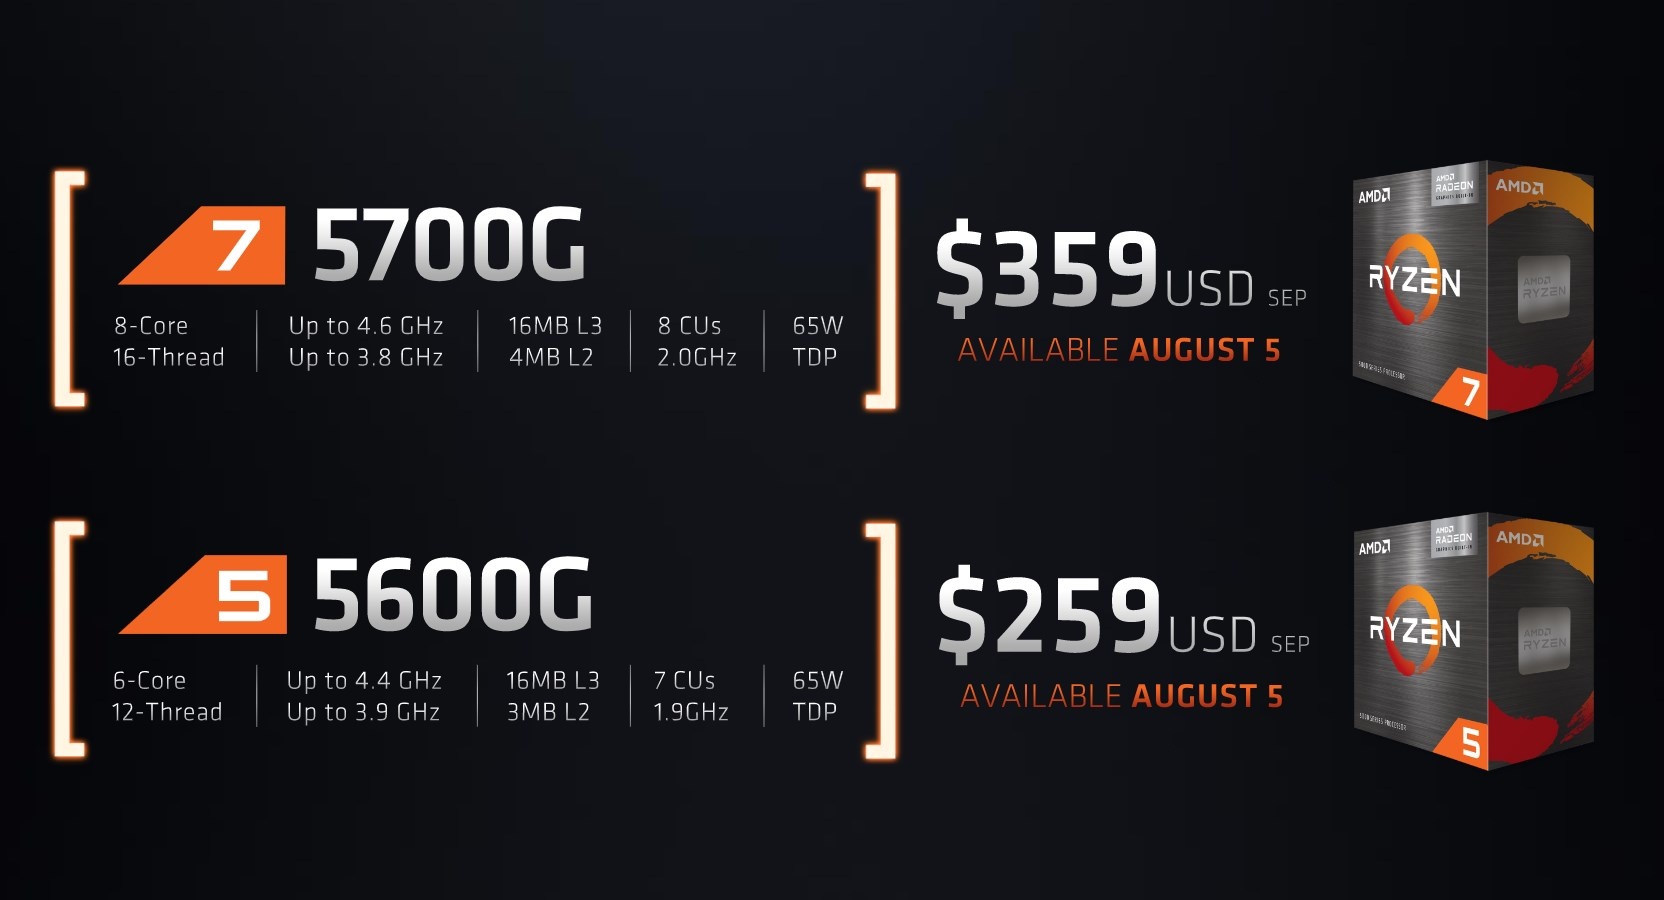 The new AMD Ryzen 5000 APUs with specifications.